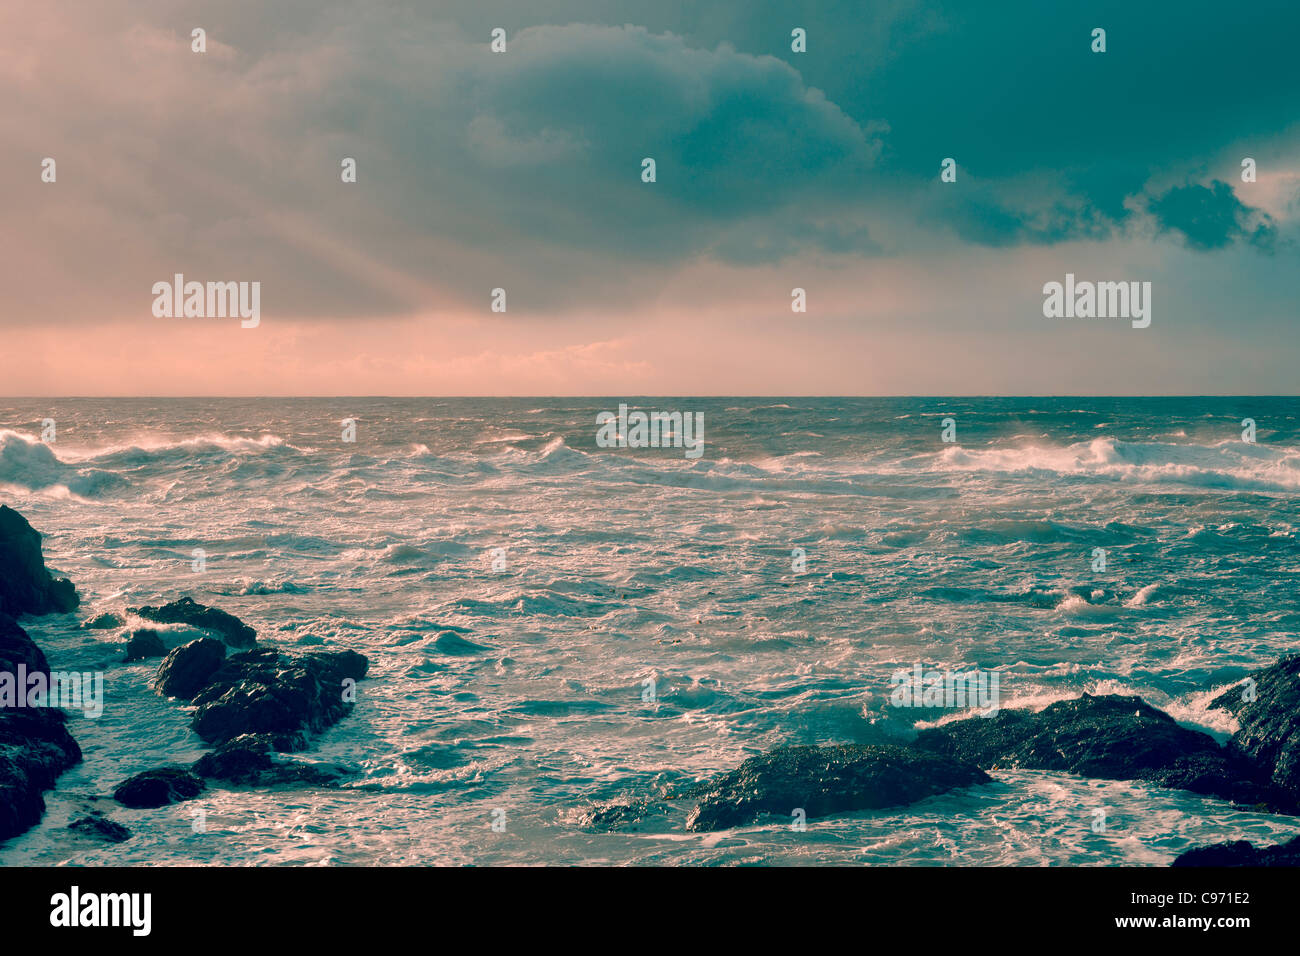 Rough Pacific Ocean waves off the coast of Vancouver Island, British Columbia, Canada Stock Photo